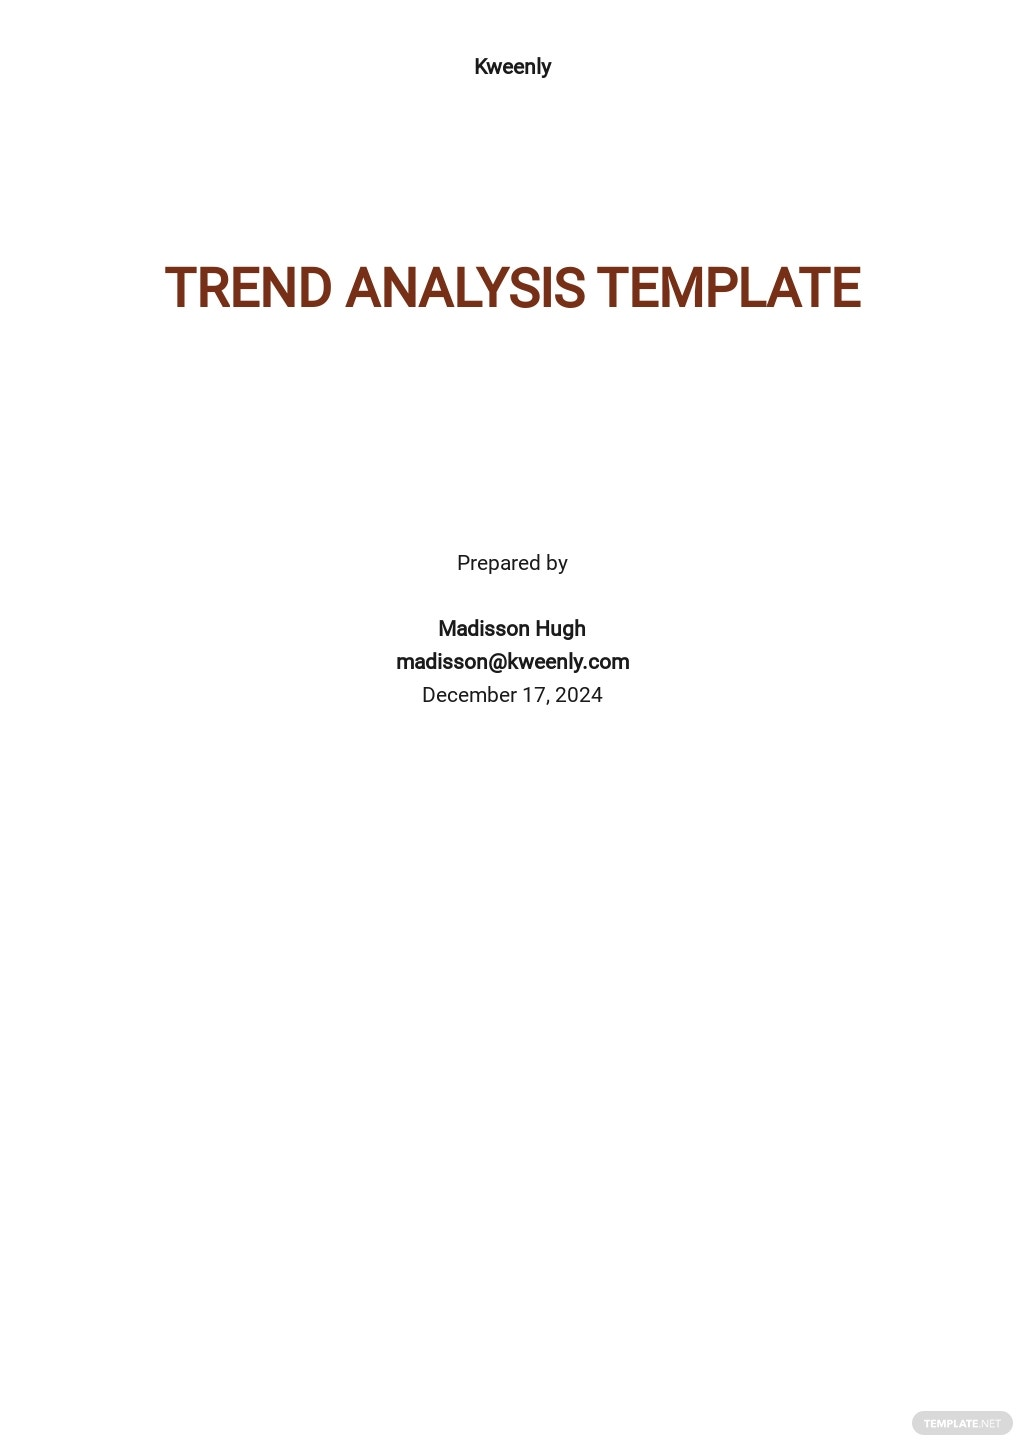 Trend Analysis Template